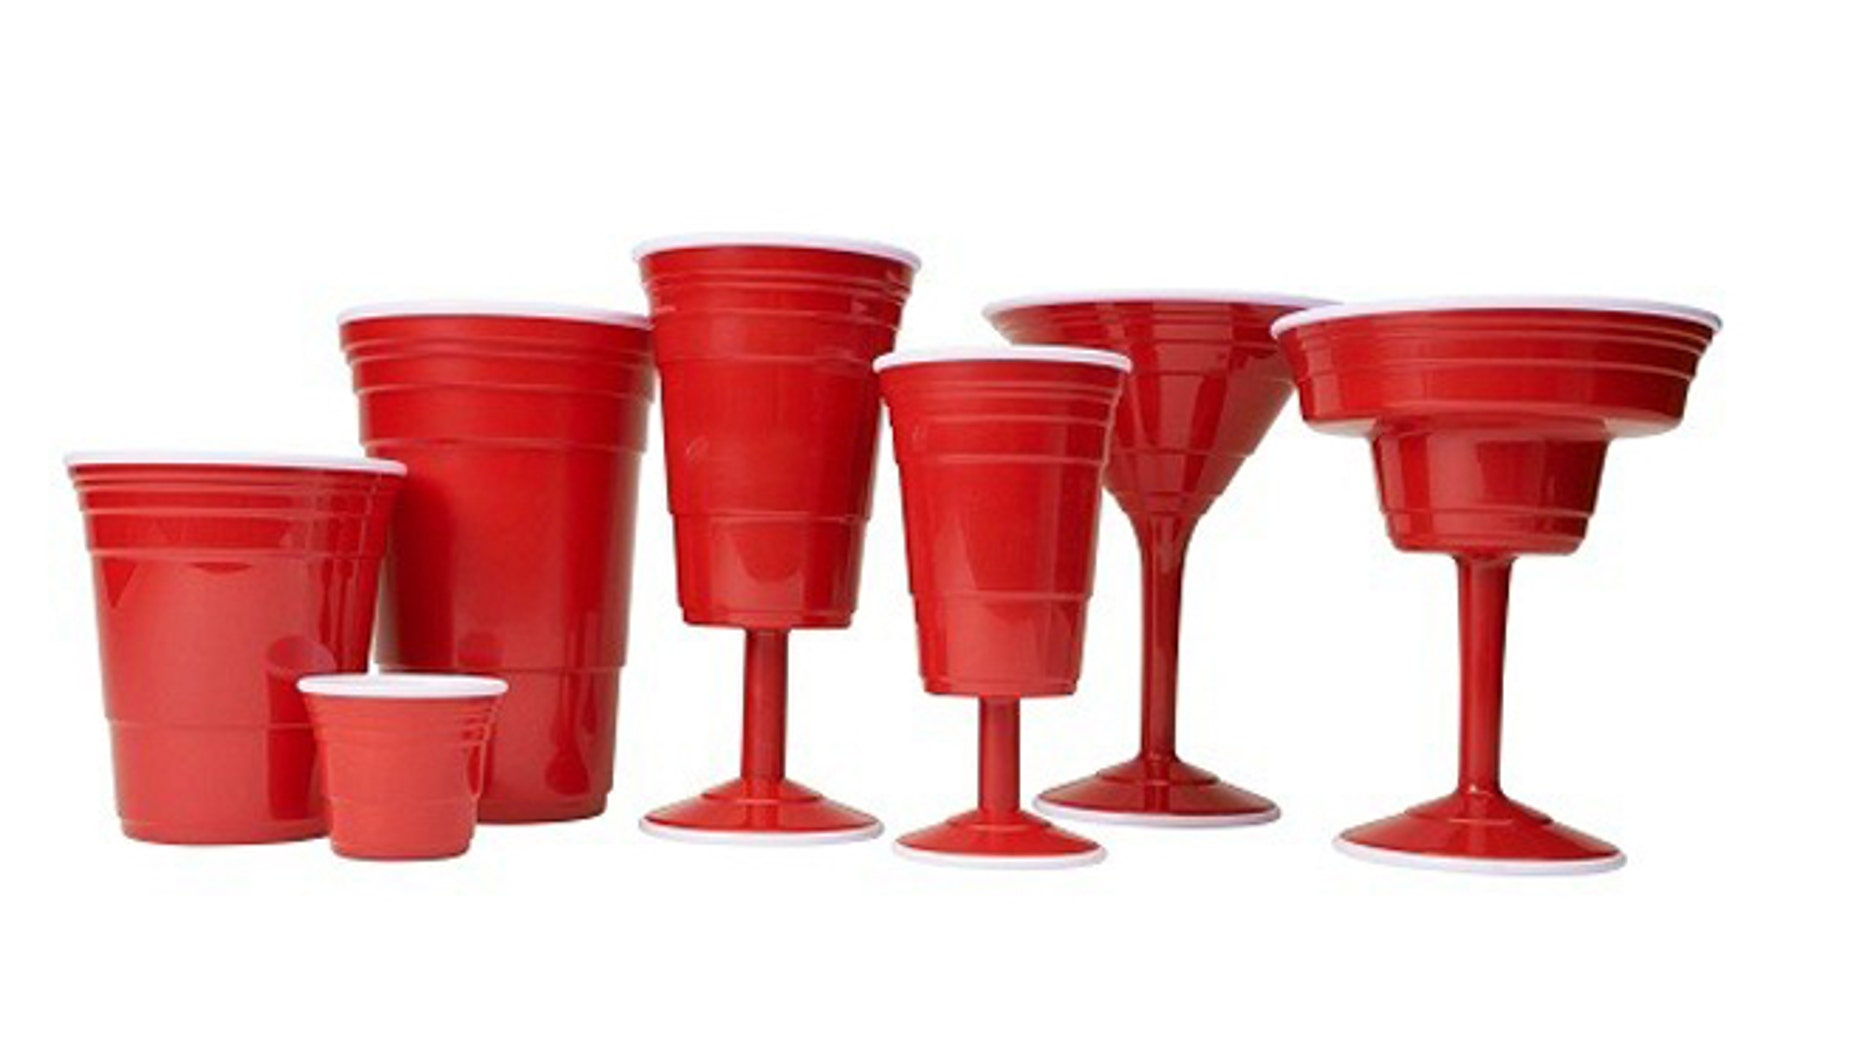 Red Cup Living is upgrading its iconic red plastic cups with some classy new designs.